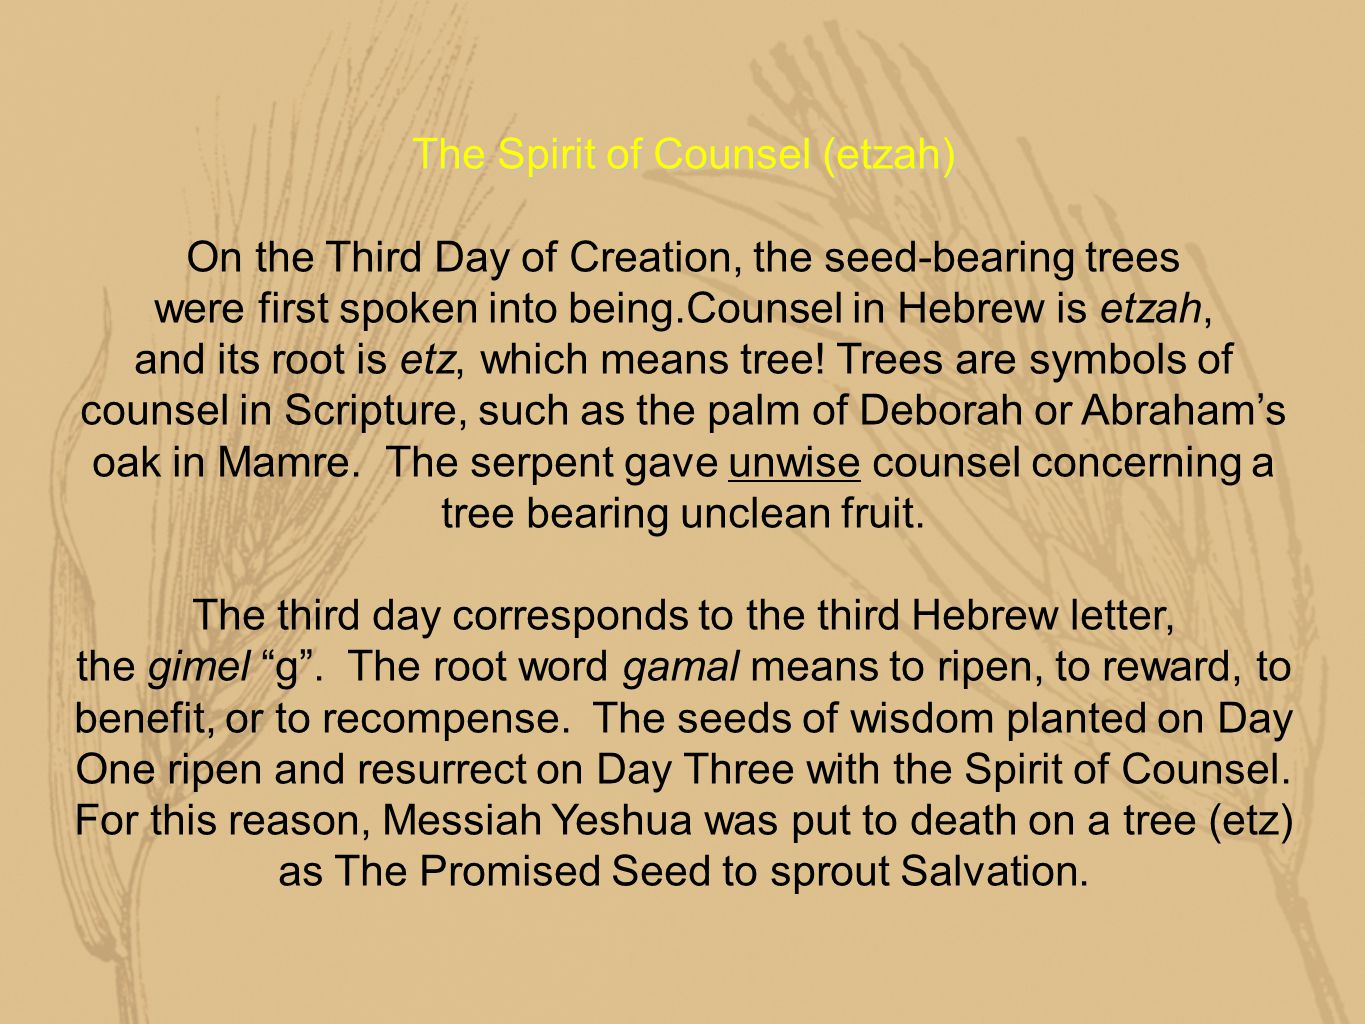 The Spirit of Counsel (etzah) On the Third Day of Creation, the seed-bearing trees were first spoken into being.Counsel in Hebrew is etzah, and its root is etz, which means tree.